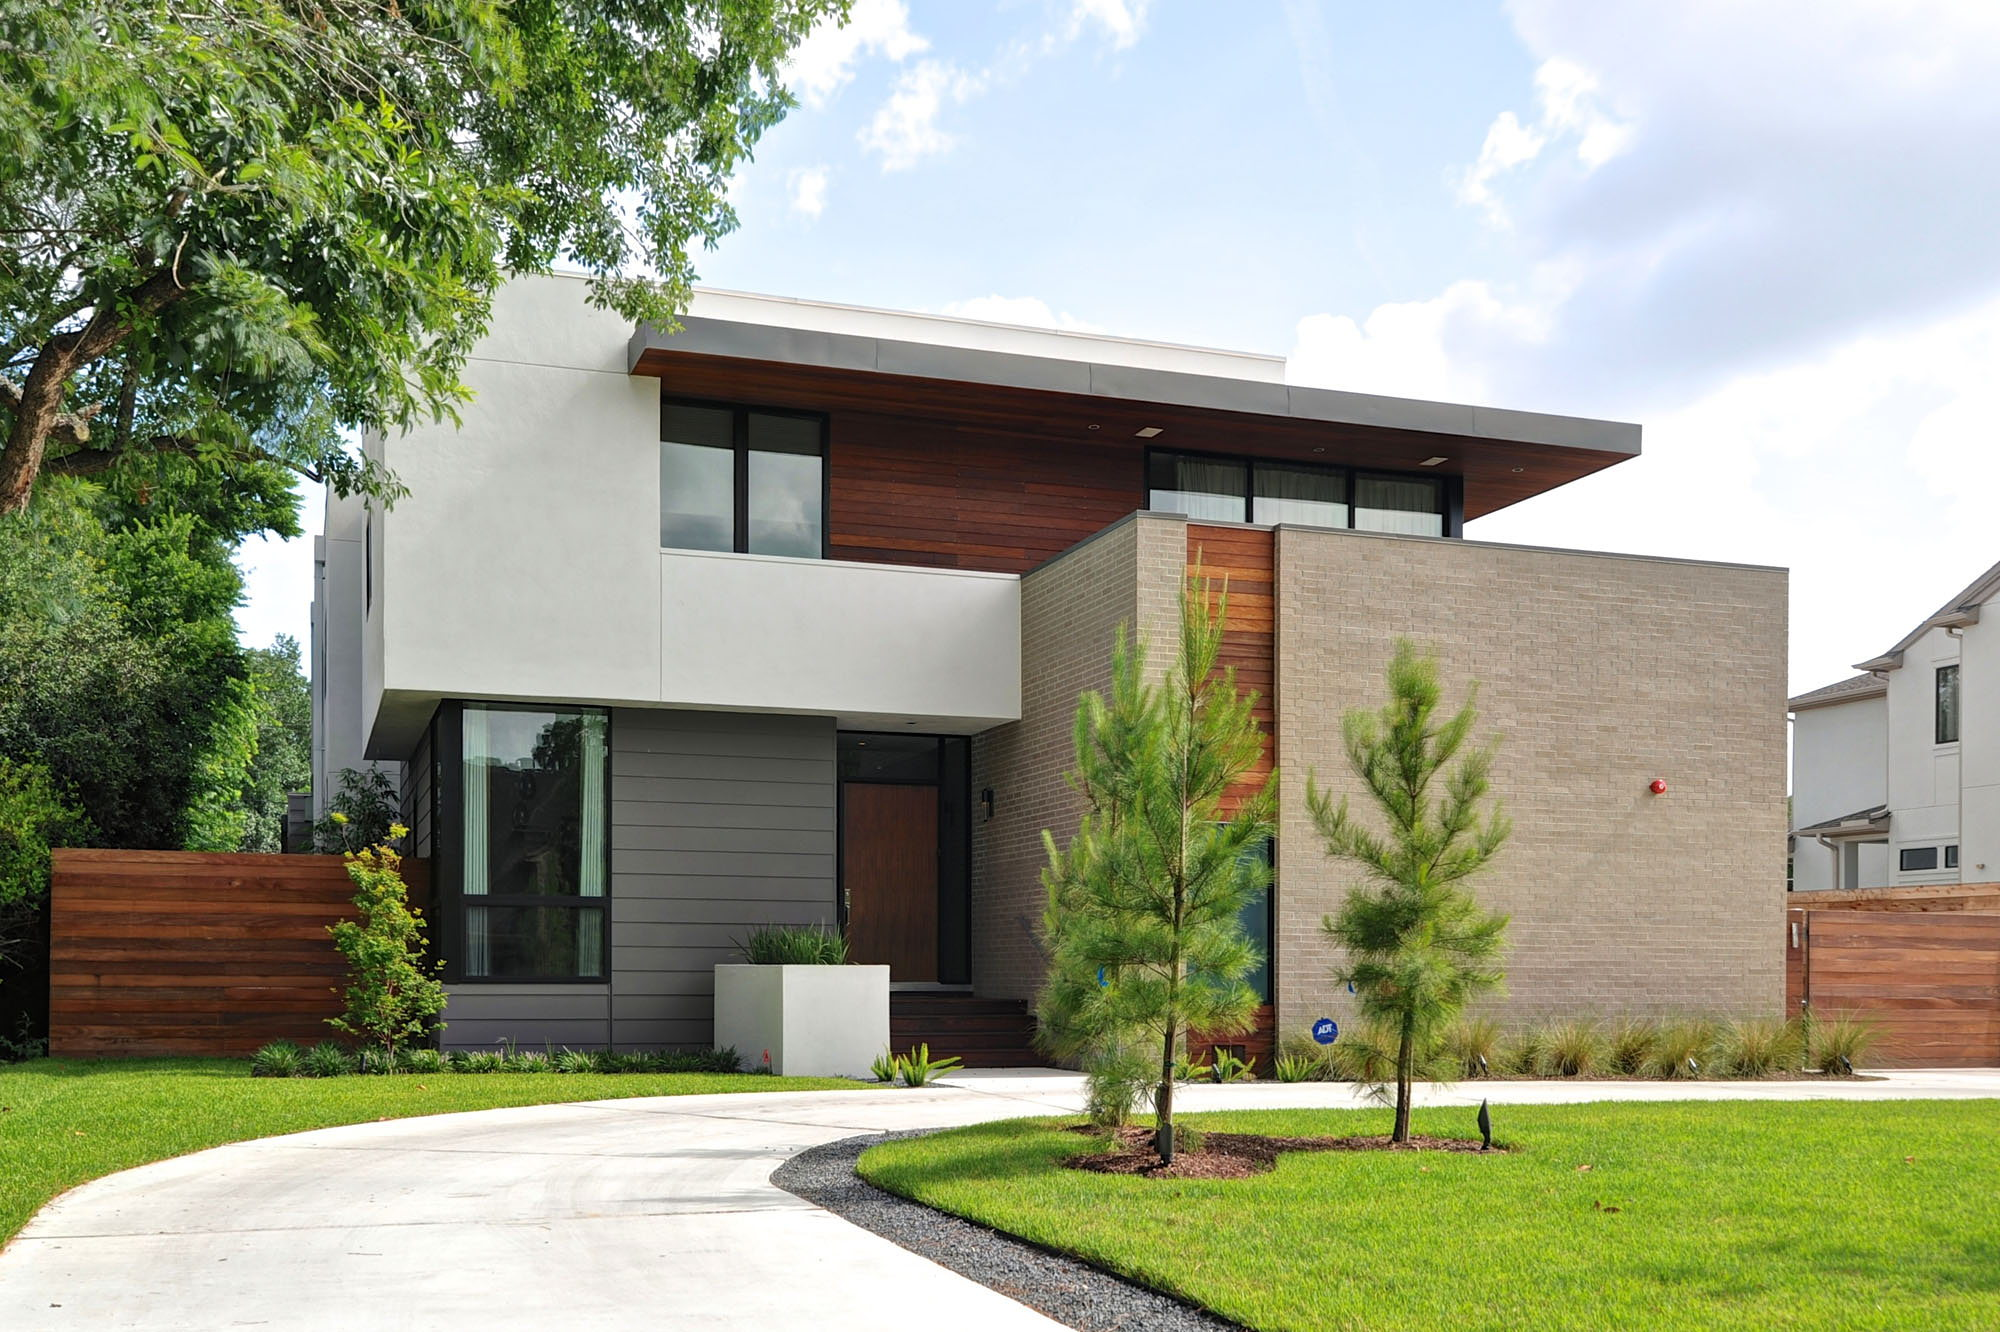 Modern house in houston from architectural firm studiomet for Home architecture